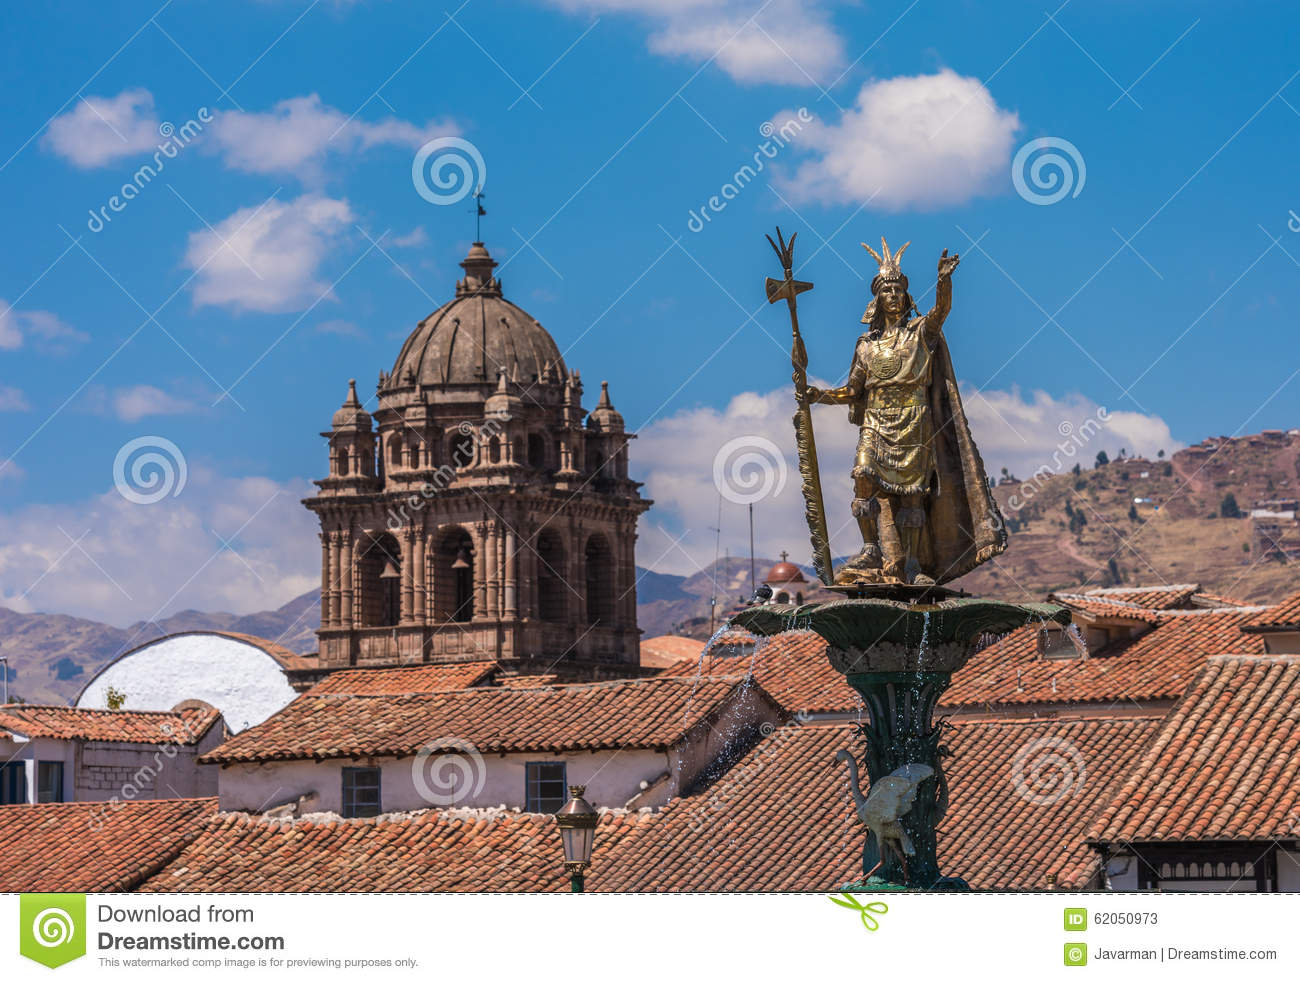 Best Time To Travel To Cusco